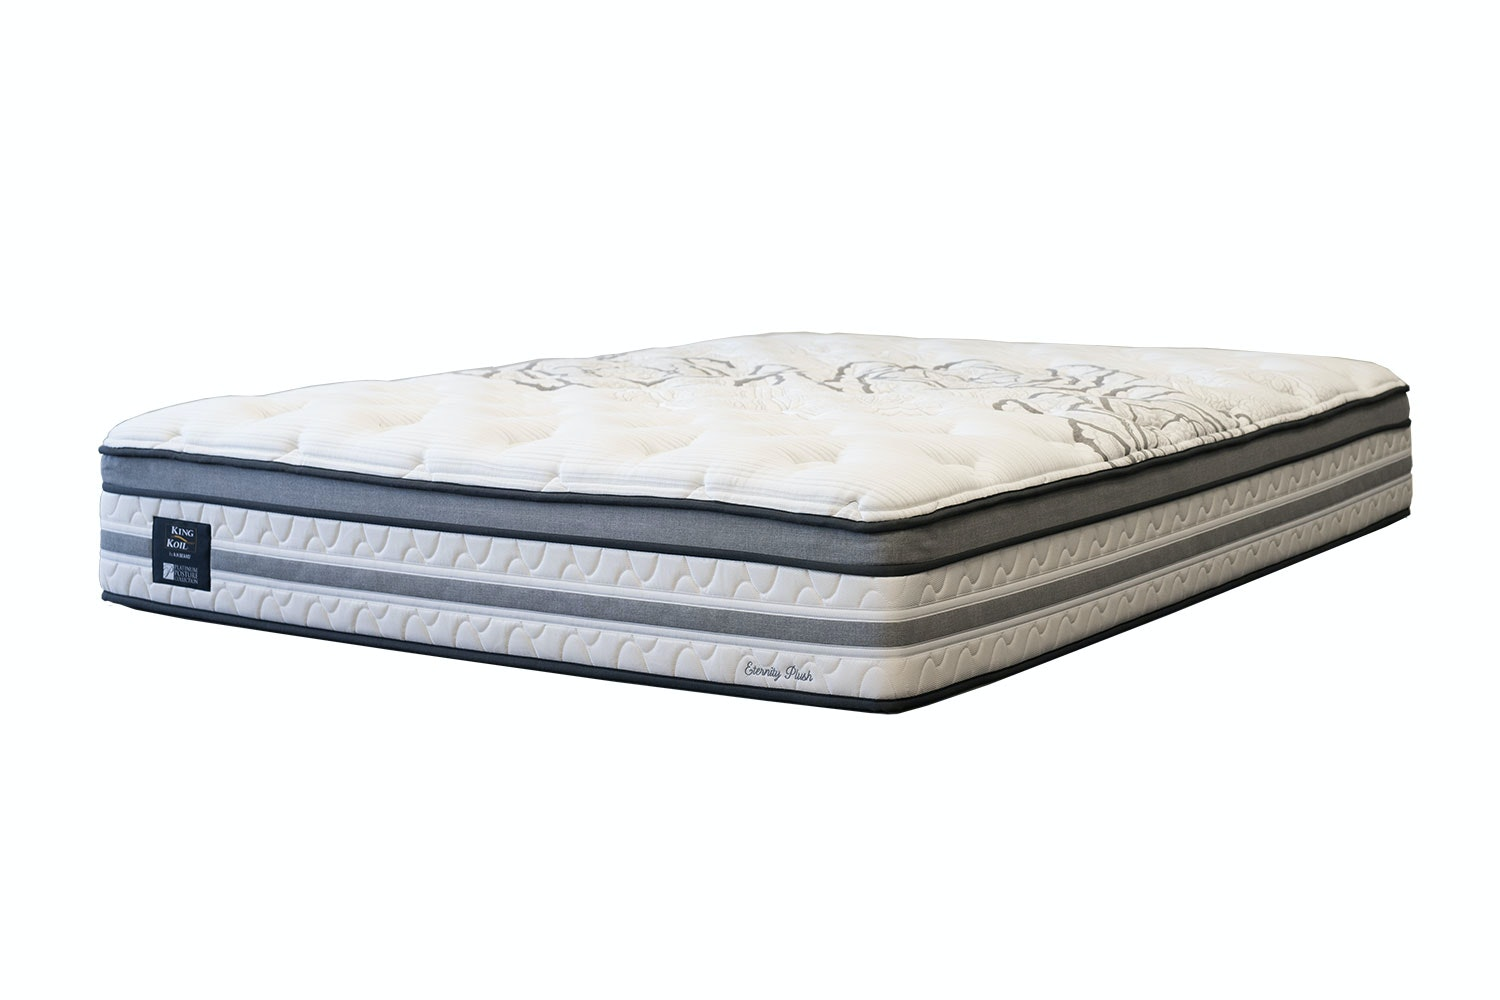 Eternity Plush Queen Mattress by King Koil